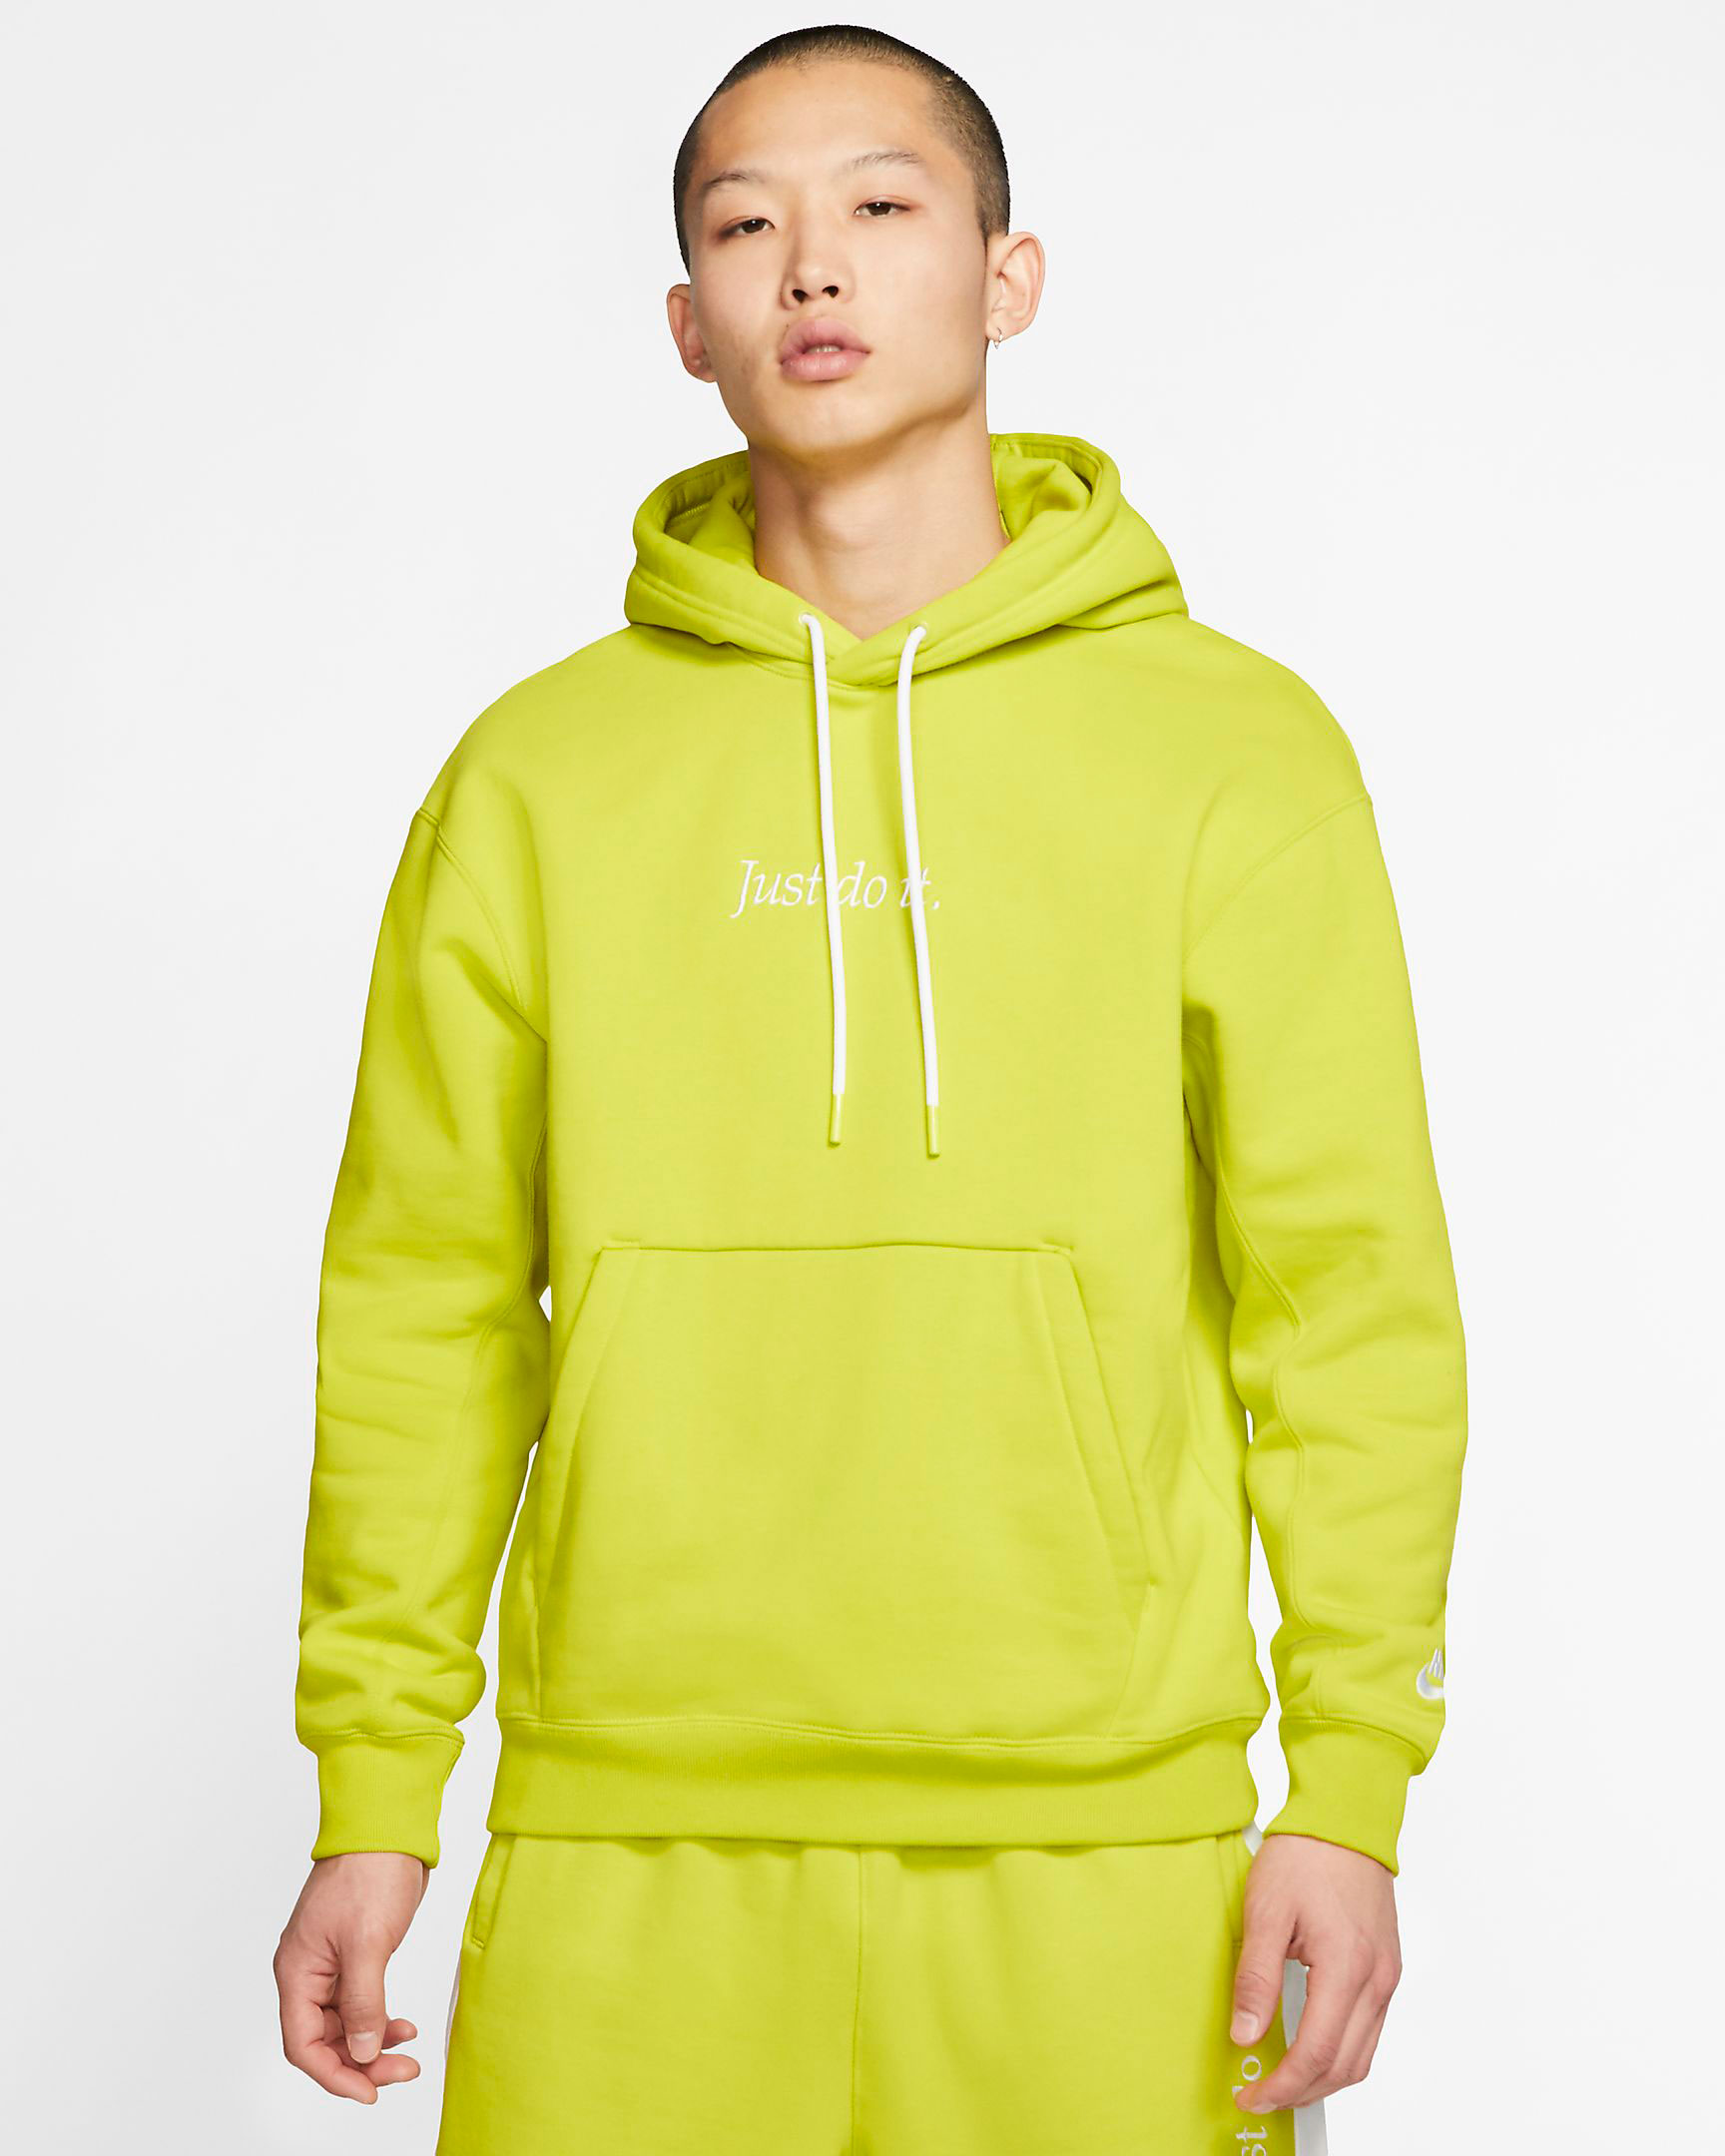 nike-sportswear-jdi-just-do-it-hoodie-volt